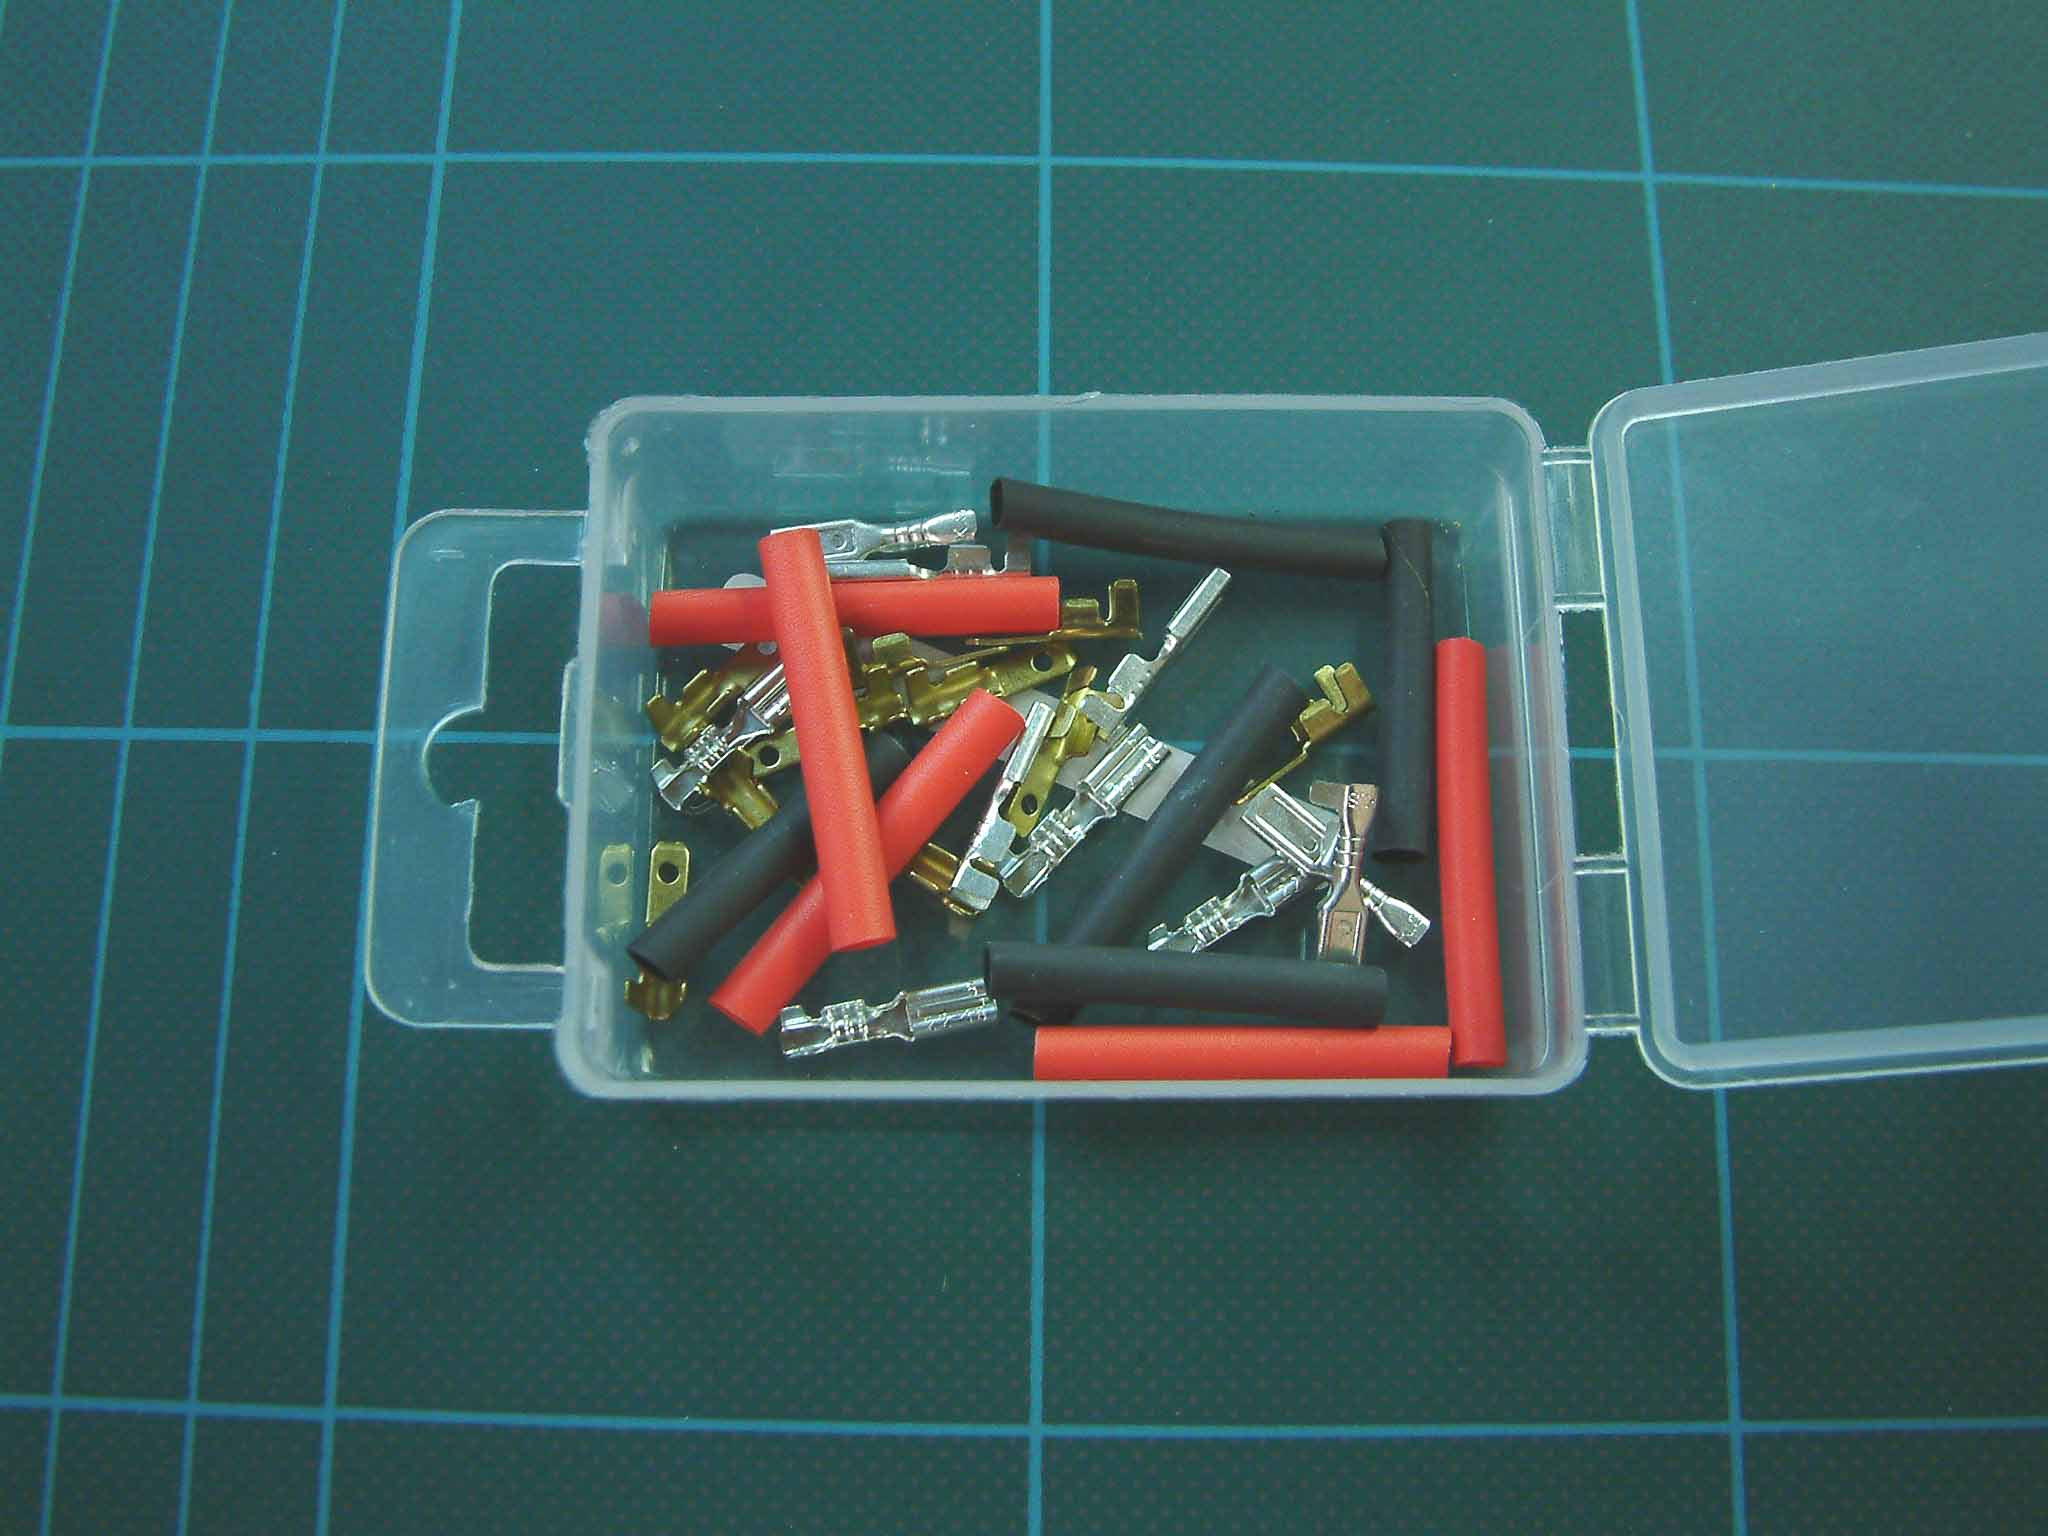 Model Railway Shop Electronics Wire Connectors And Battery Packs Gm Ignition Fuse Box Connector Expo A23000 Micro Spade Heat Shrink Pack Of 10